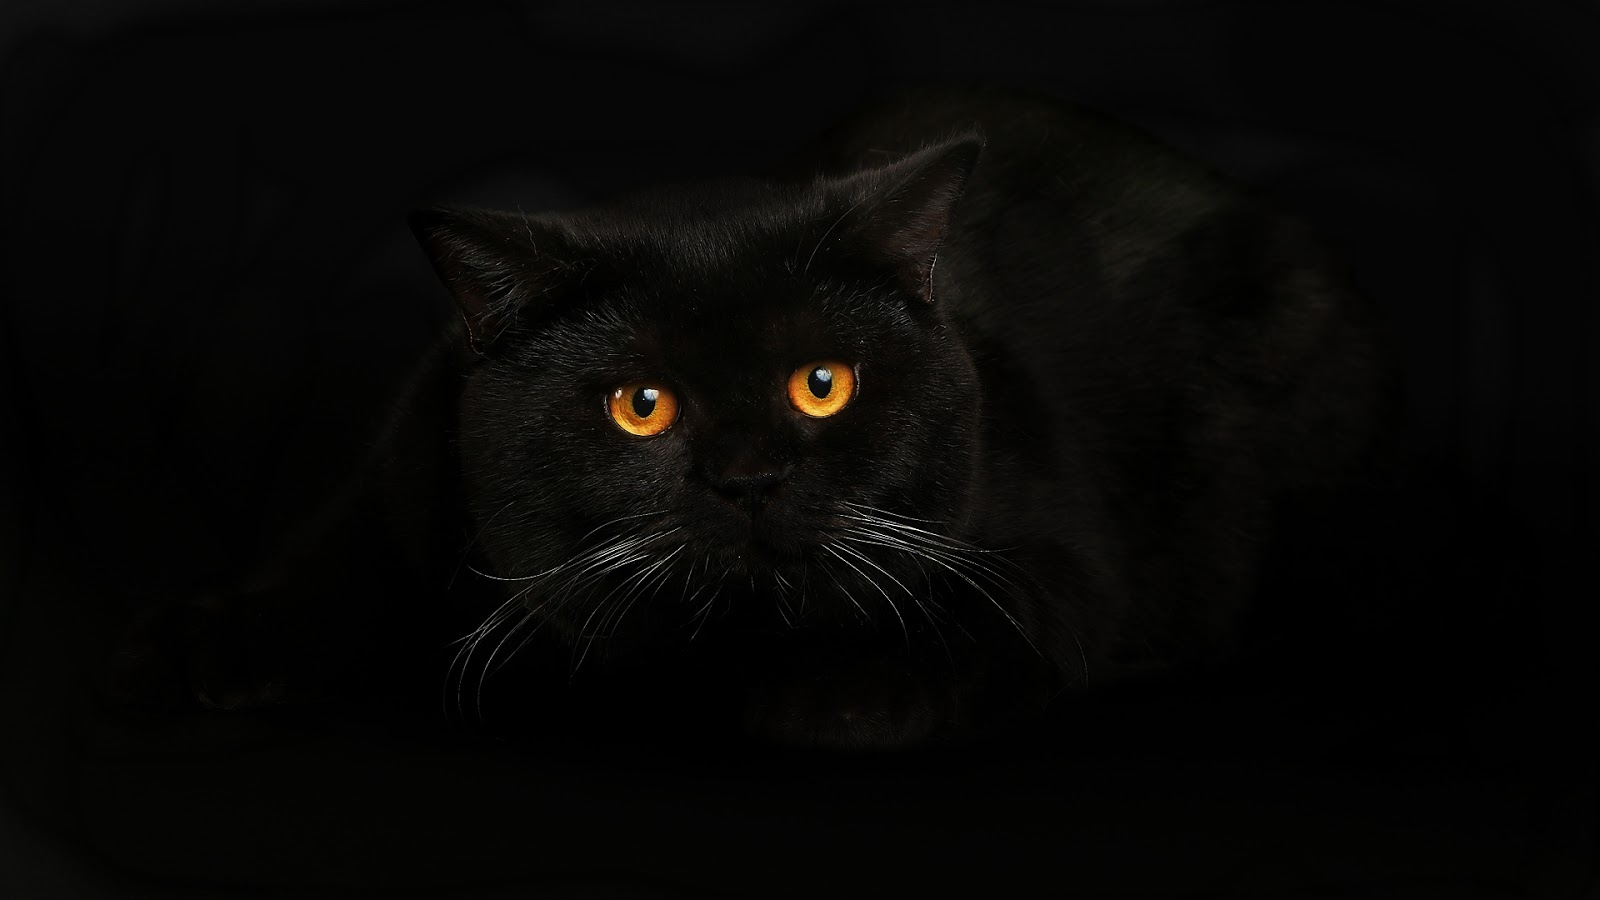 Black Cat Wallpaper - Best HD Wallpapers